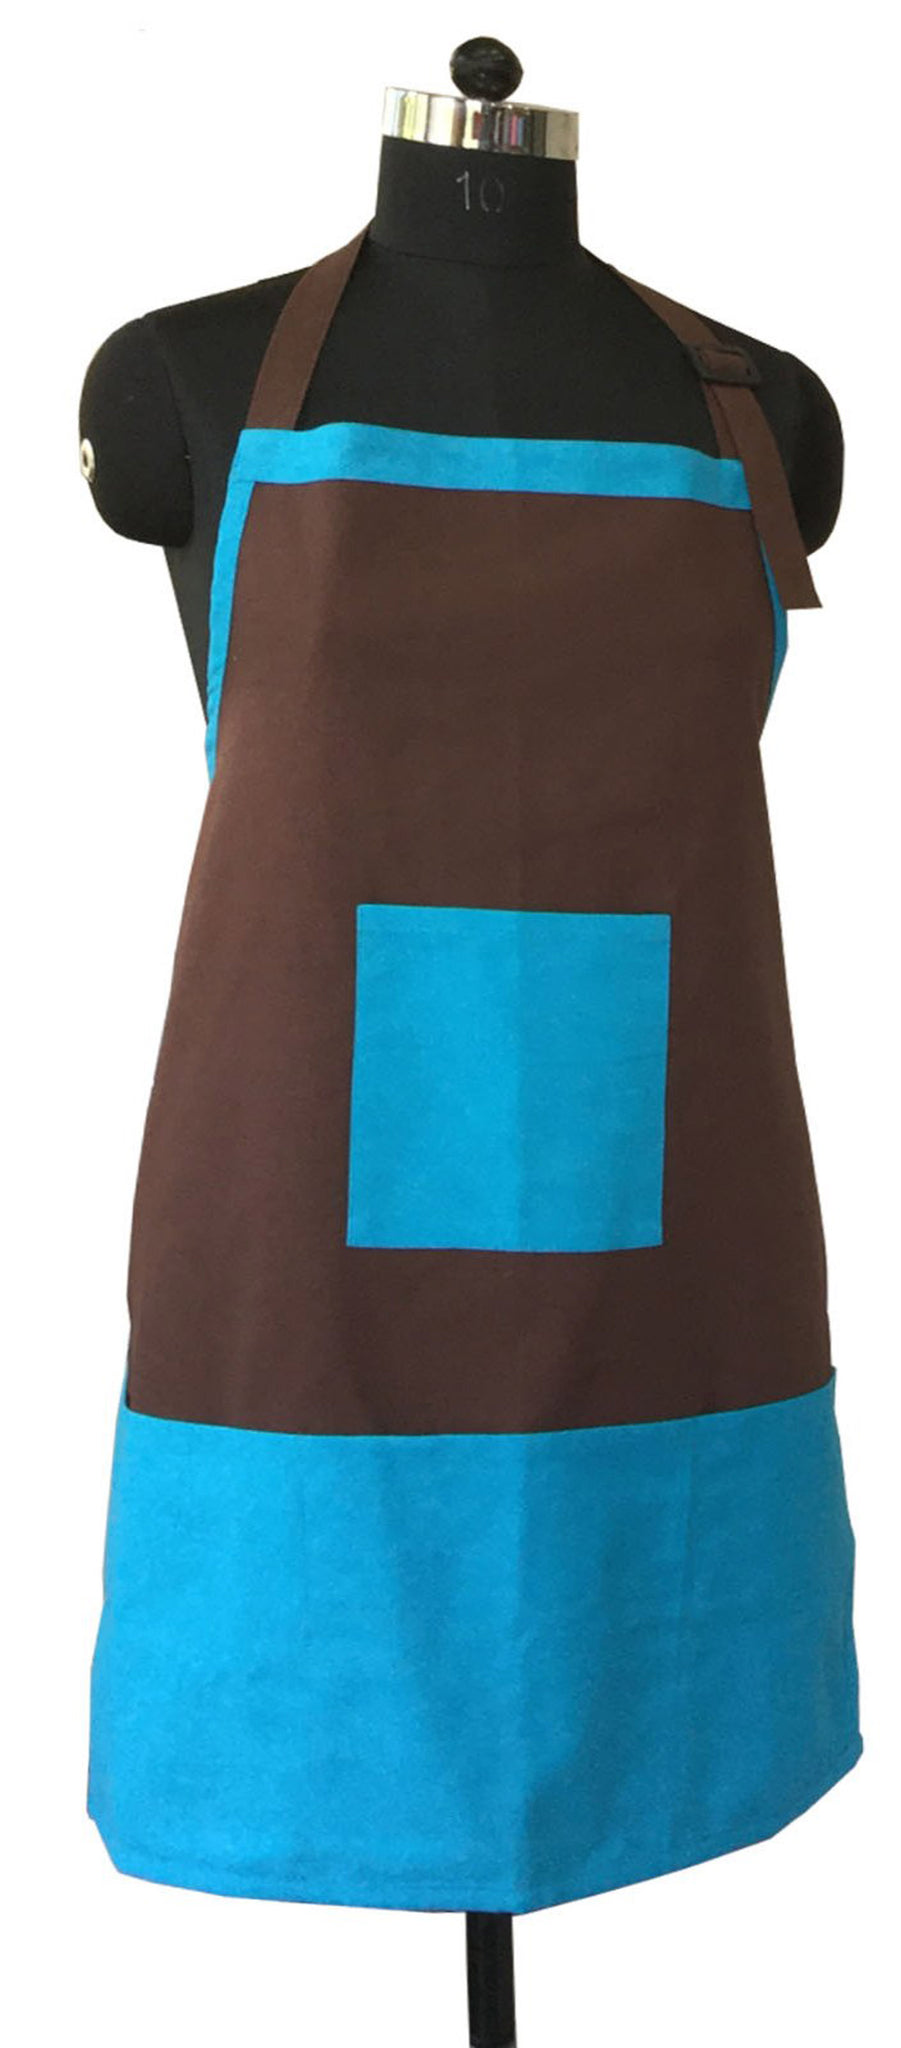 Lushomes Cotton Bachelor Button and French Roast Bi-color Apron